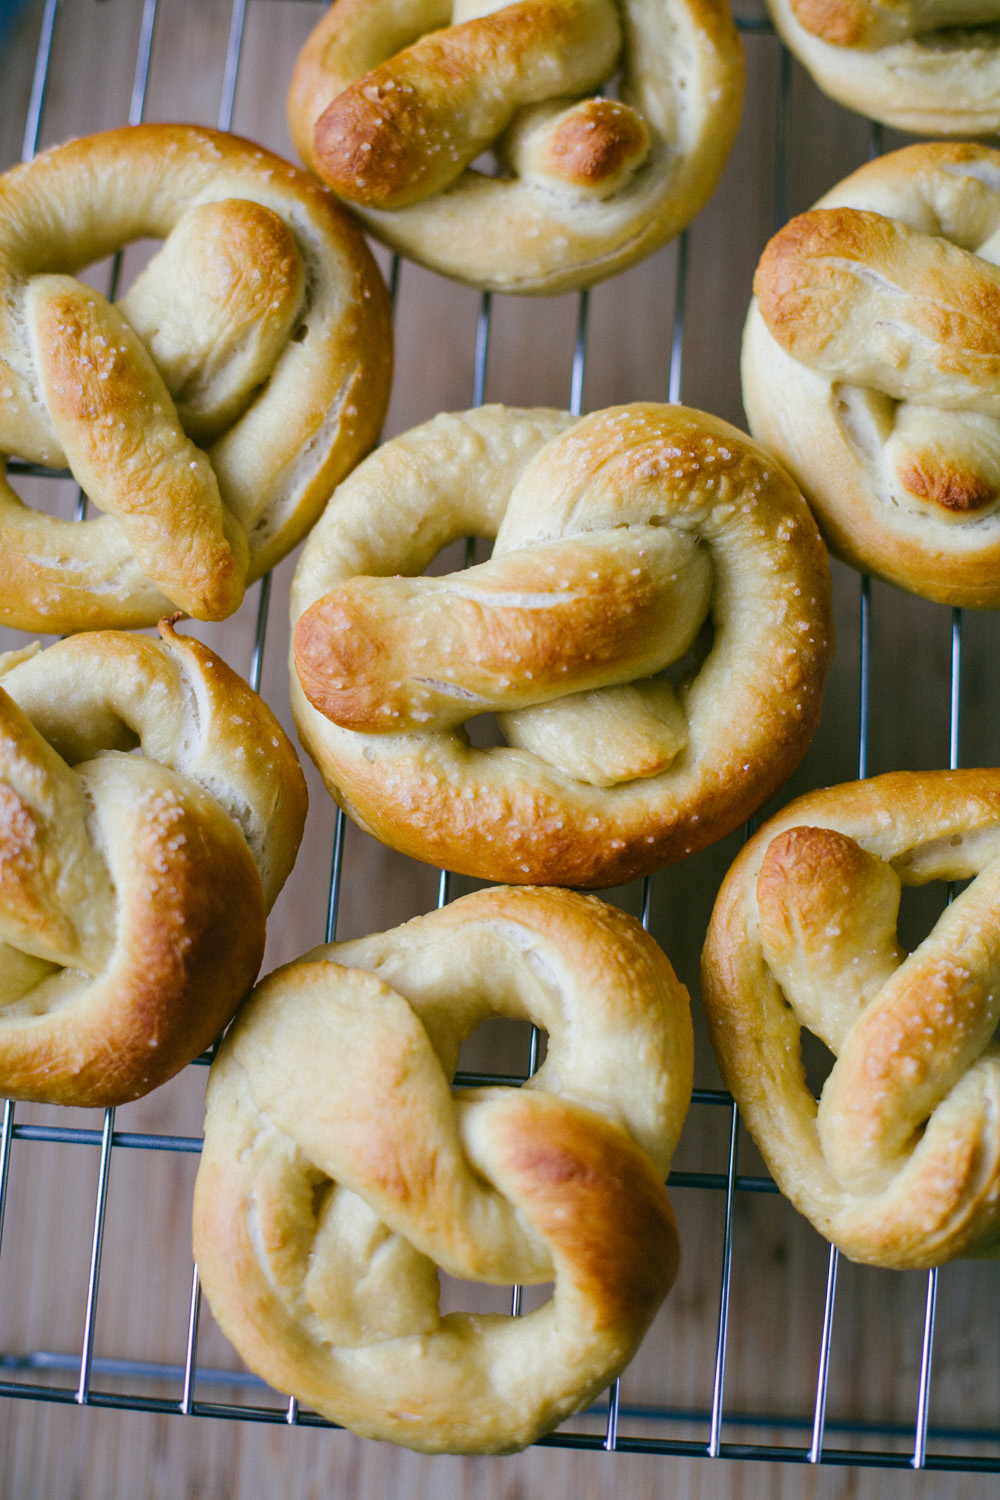 baking pretzels from Walter the Baker